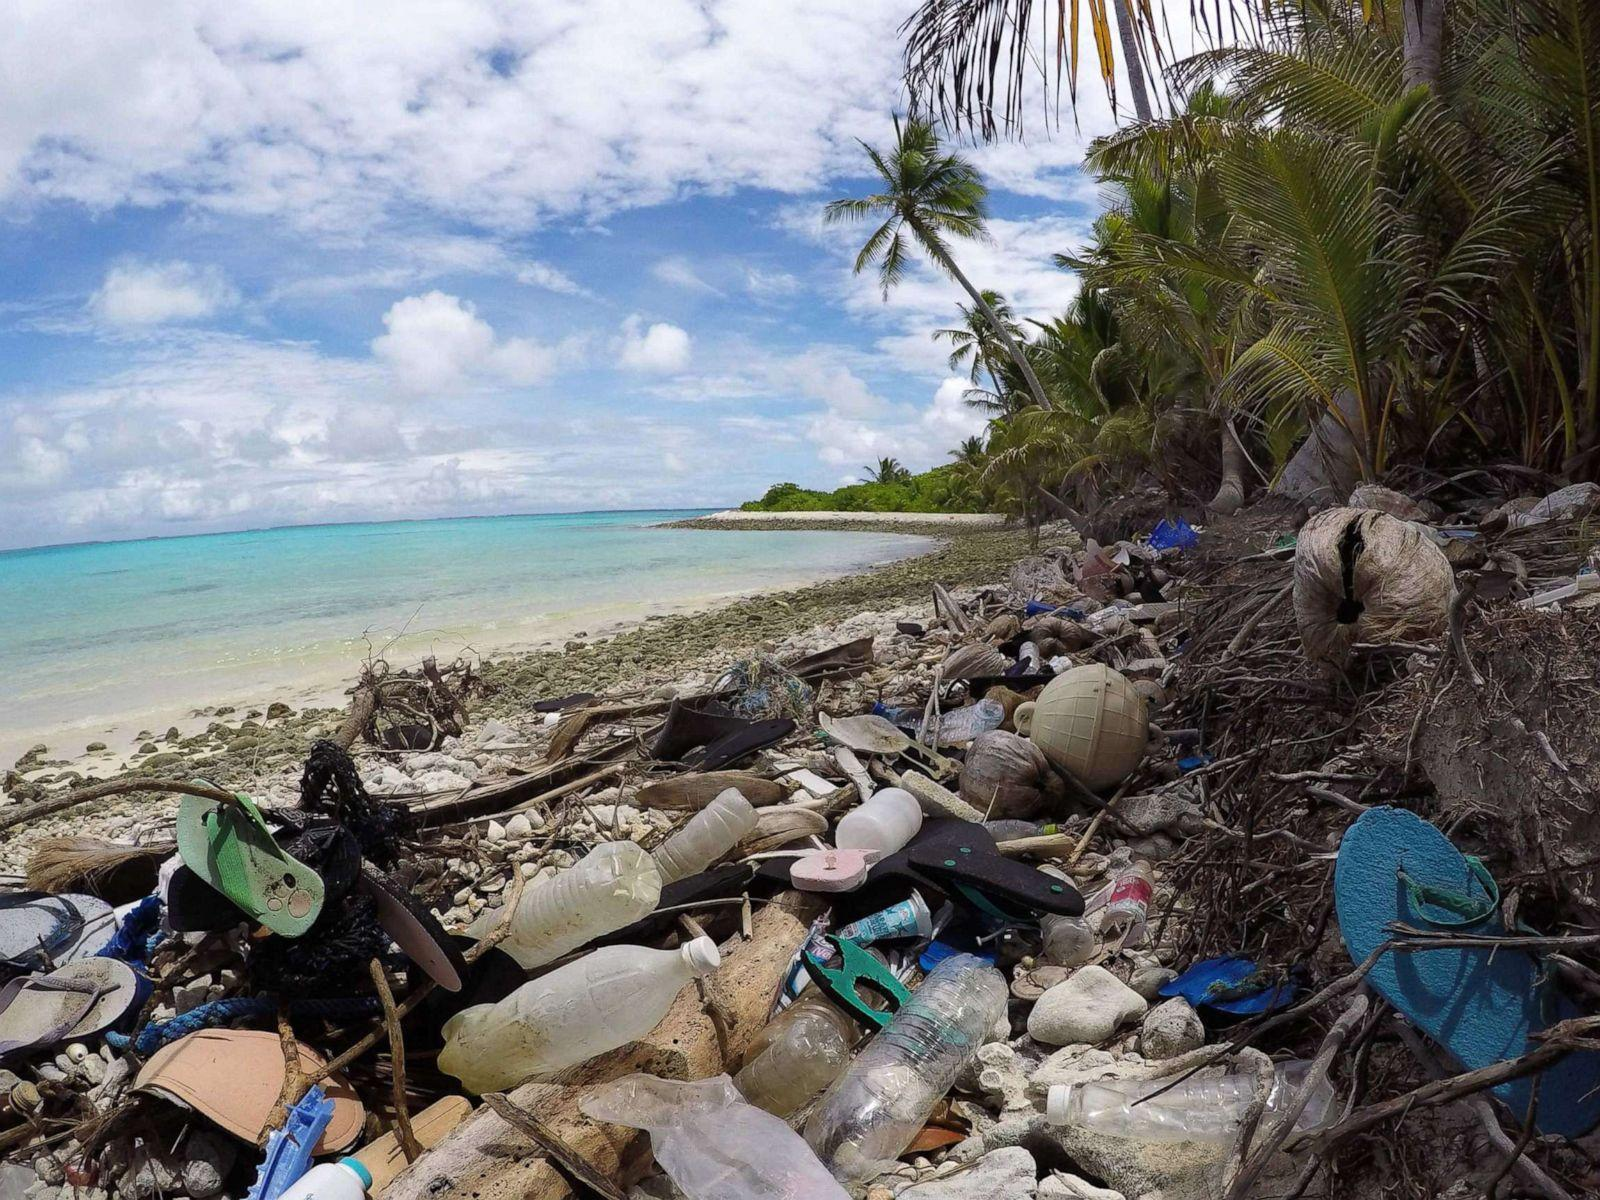 On the remotest of islands, hundreds of tons of plastic and